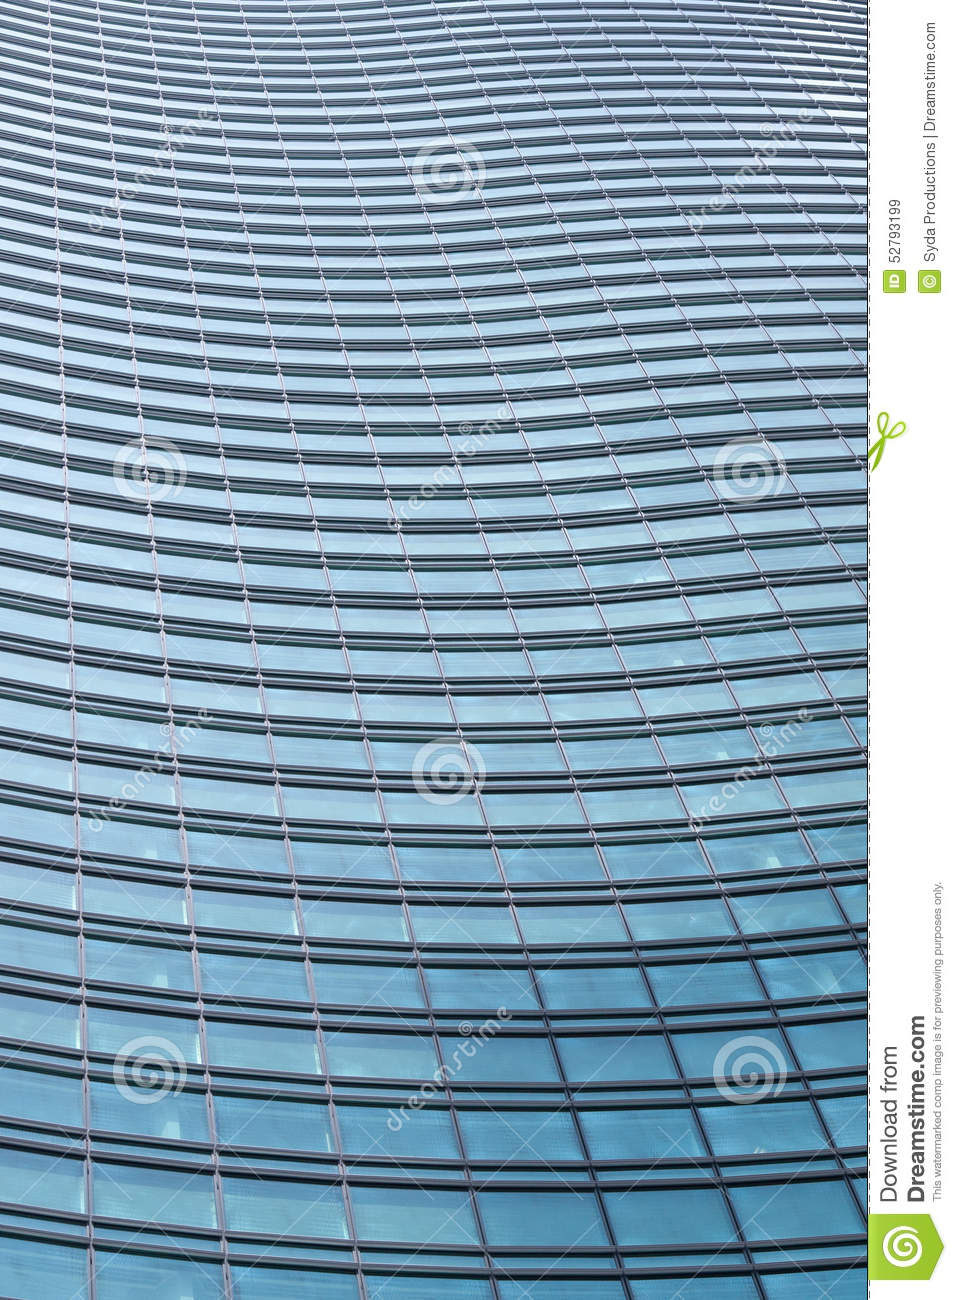 Office building windows texture stock photo image 52793199 for Exterior background